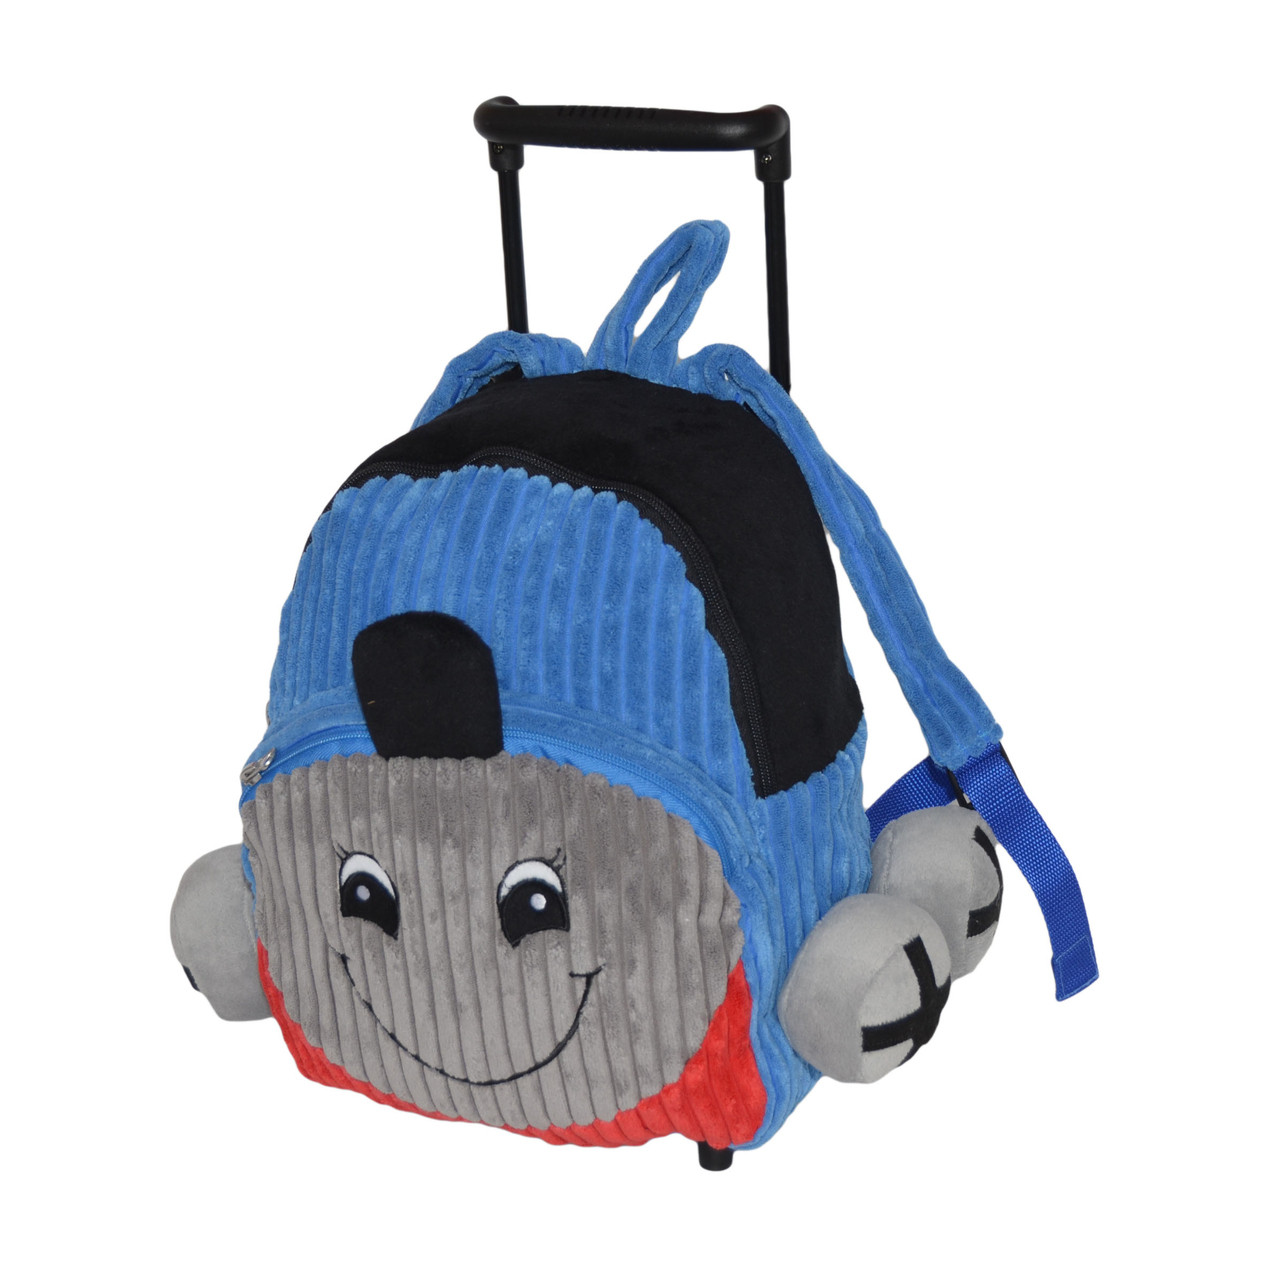 ca43a3c7d7f8 Blue Train Plush Rolling Backpack